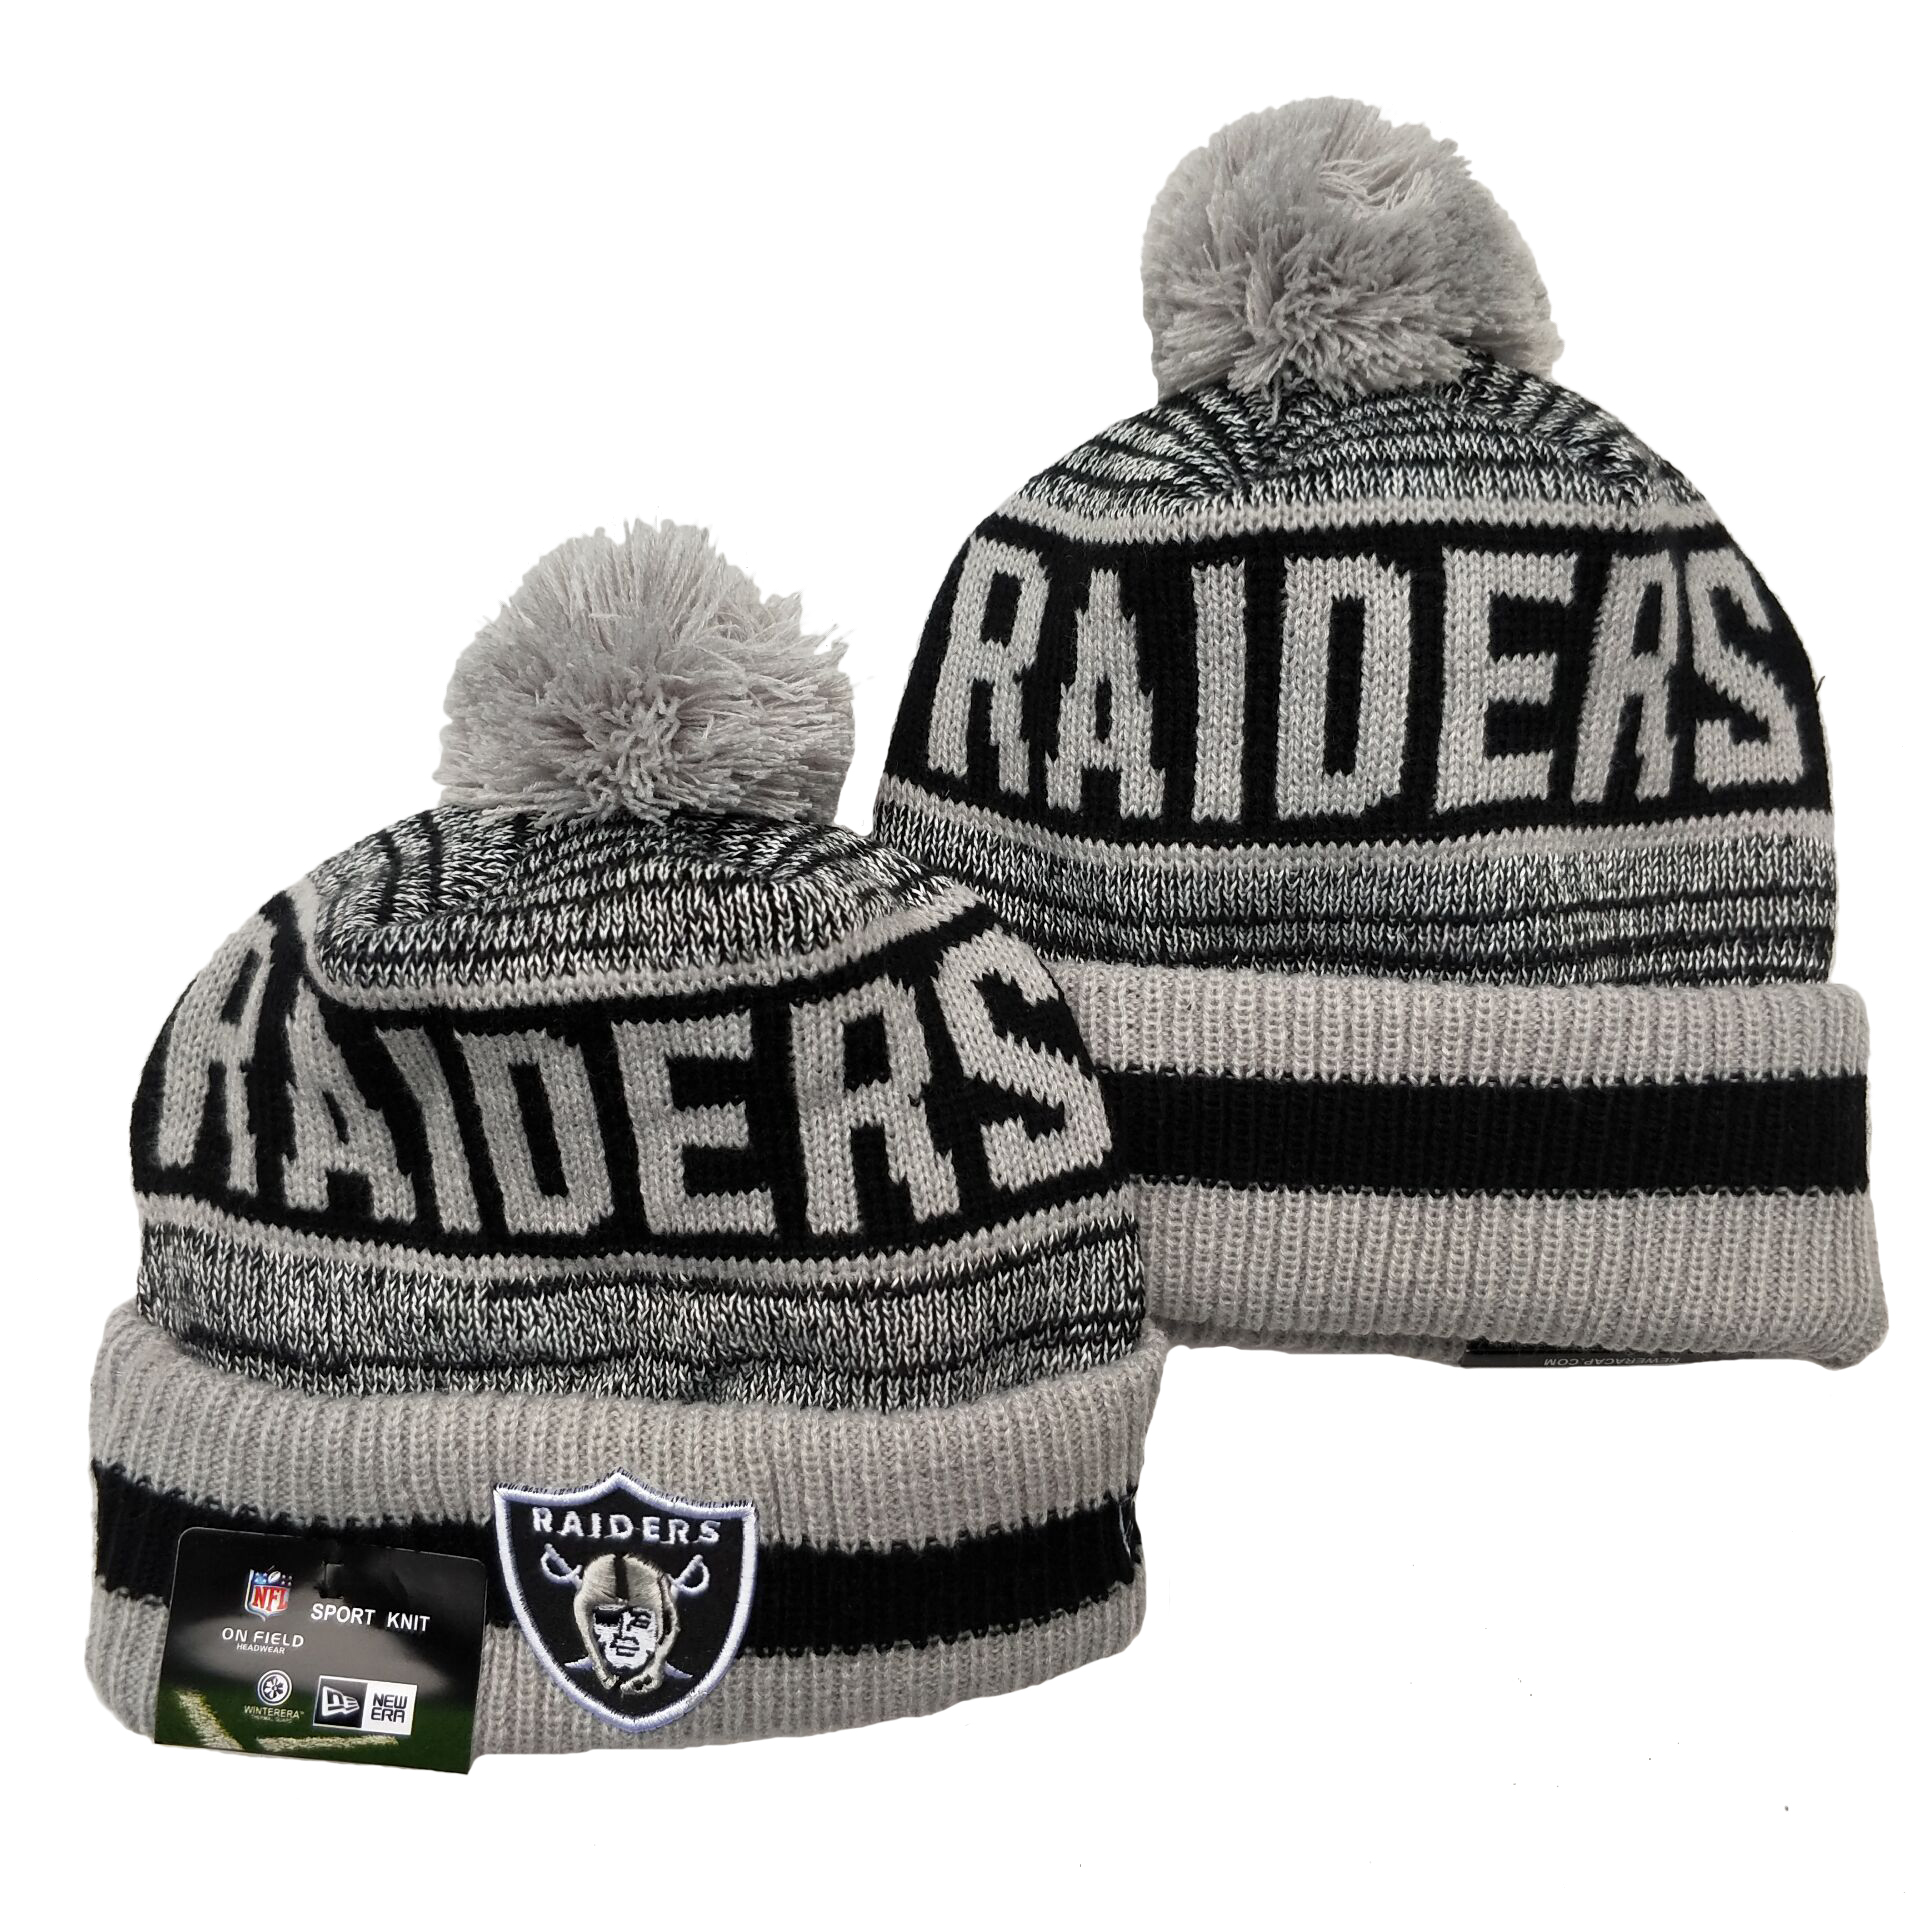 Las Vegas Raiders Knit Hats 081